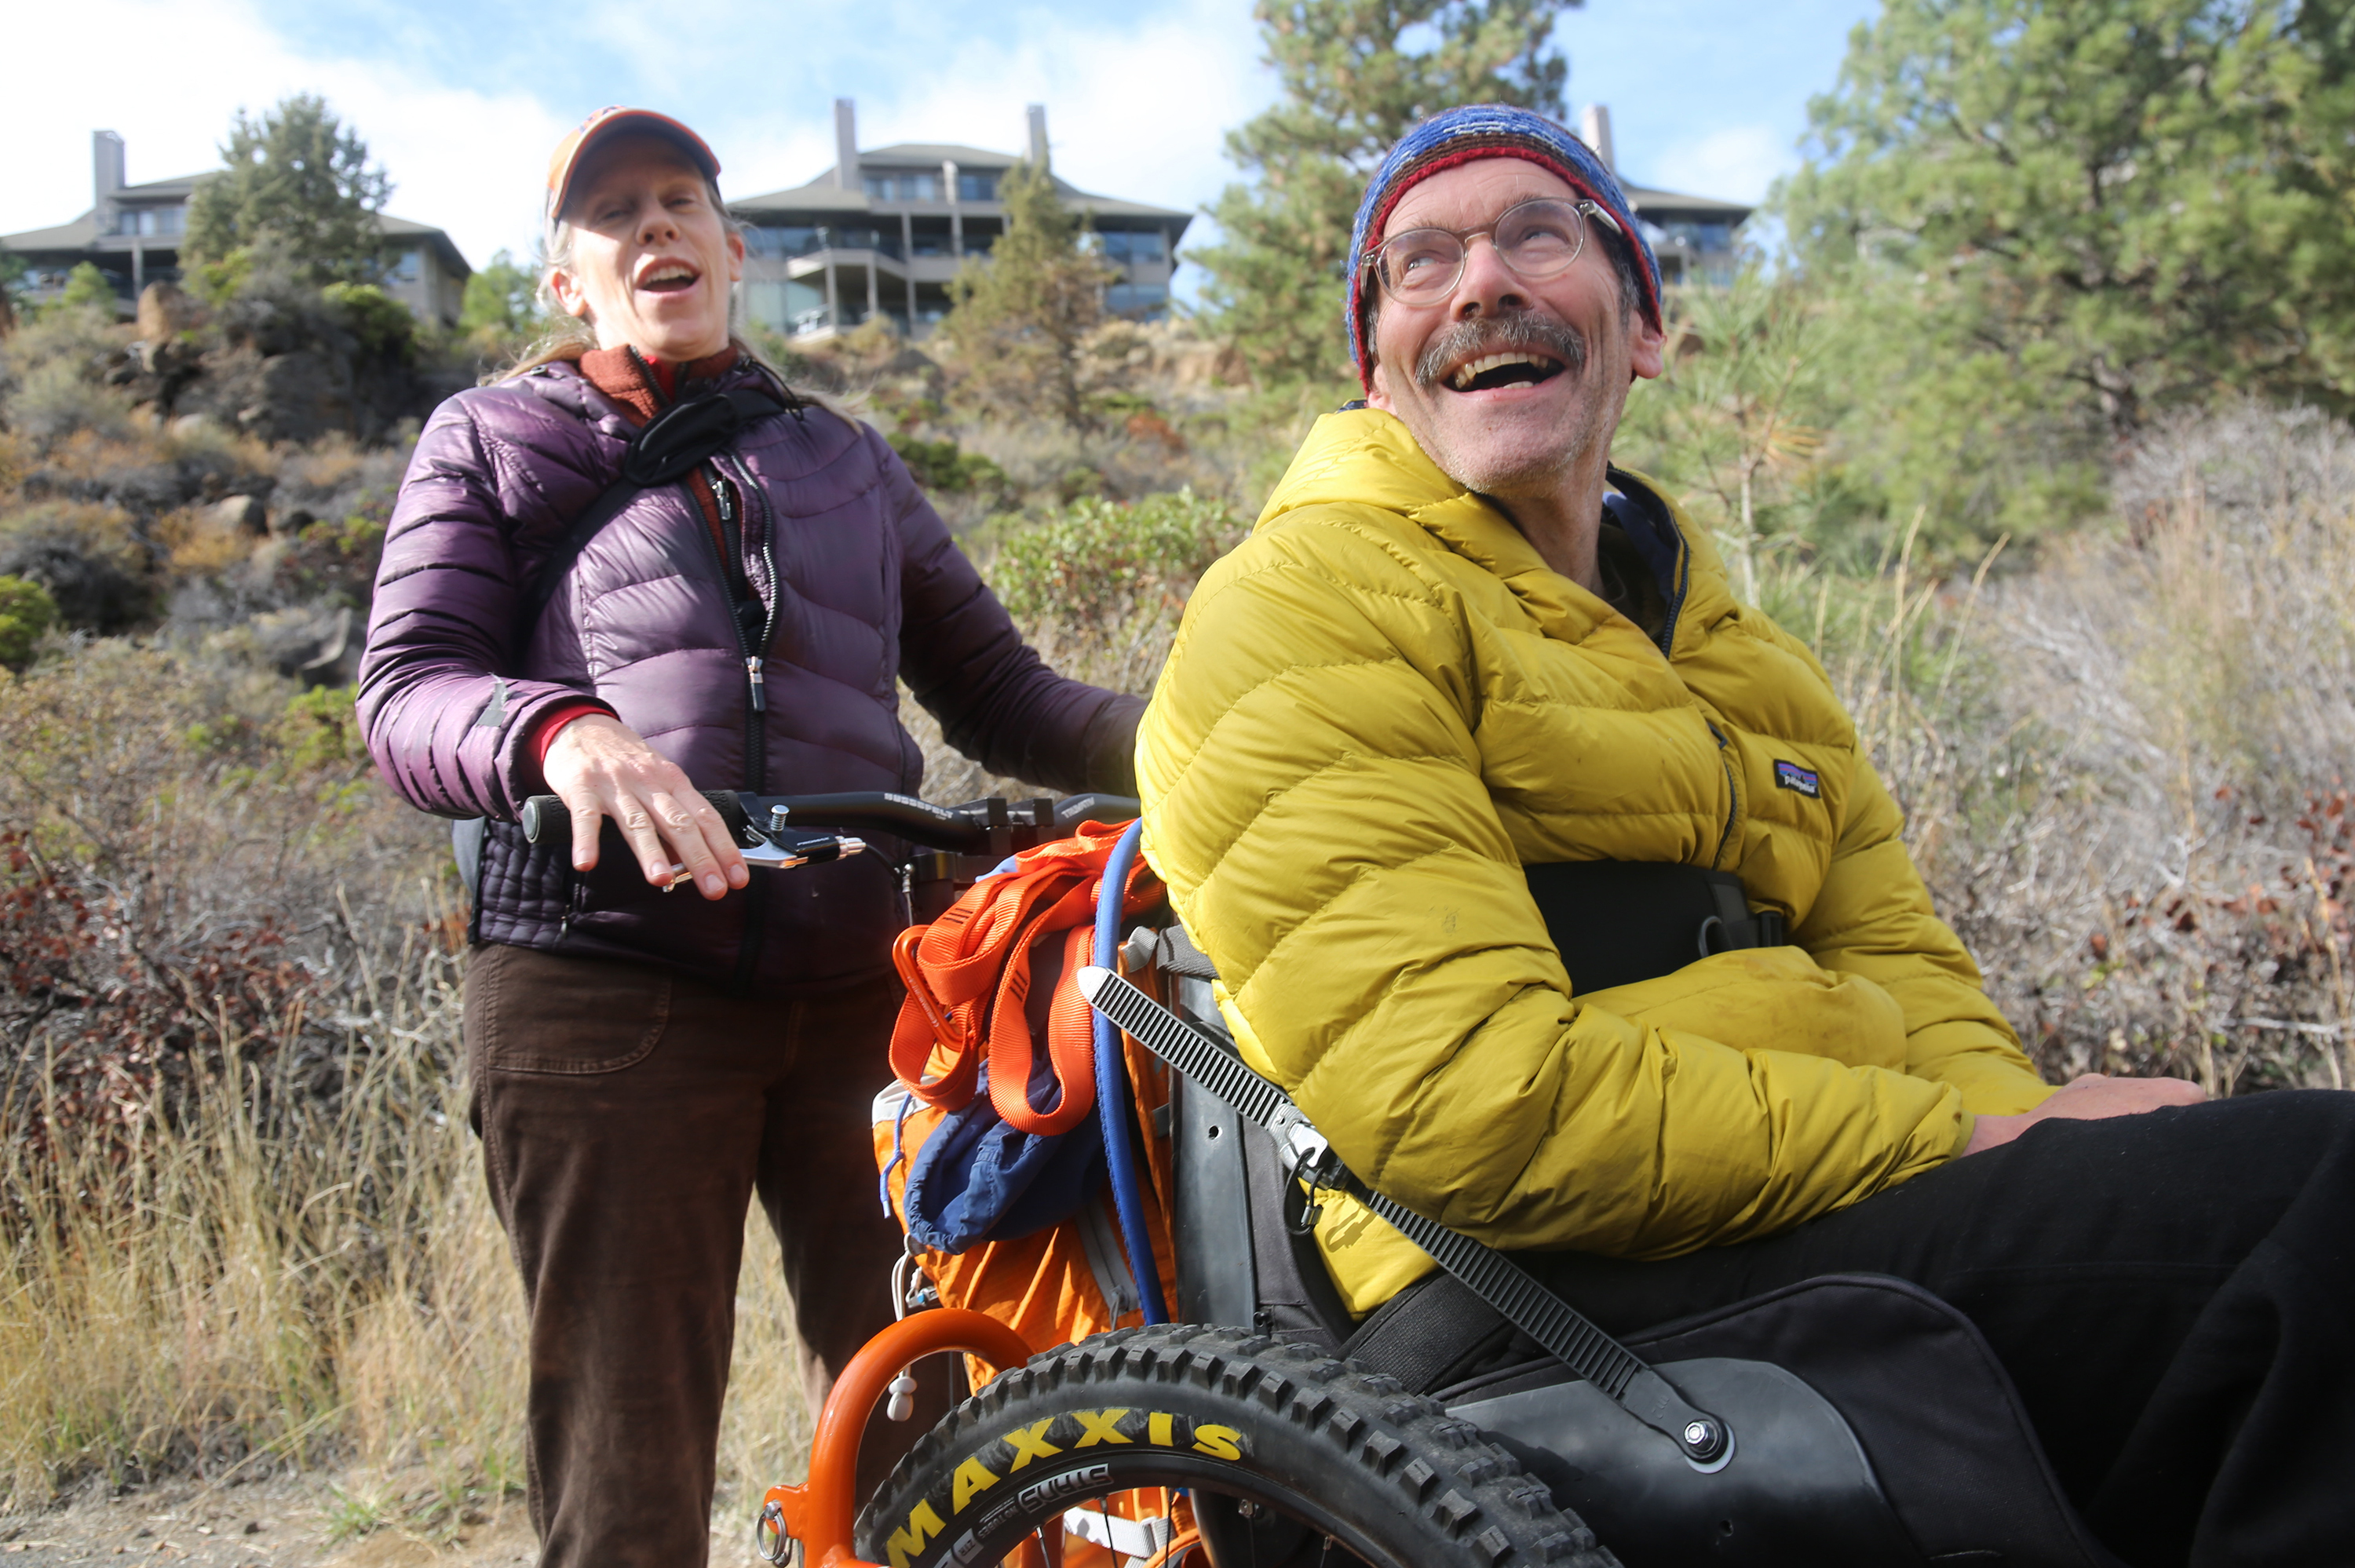 Hiking Wheelchair Opens Up Outdoor Lifestyle To People With Disabilities